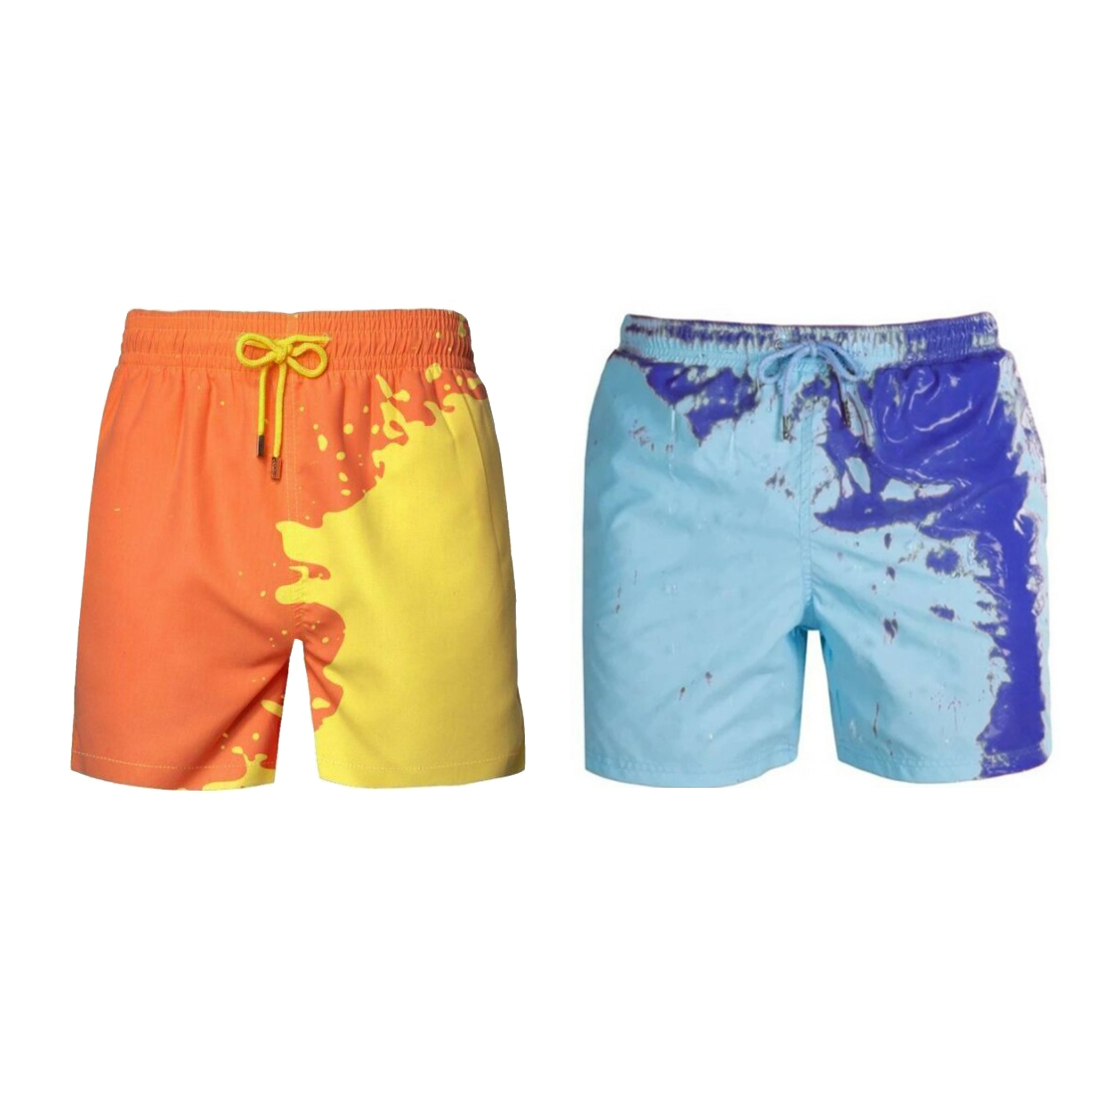 🔥Set 2 ($19.98 Each)-2021 New Color Changing Swim Trunks